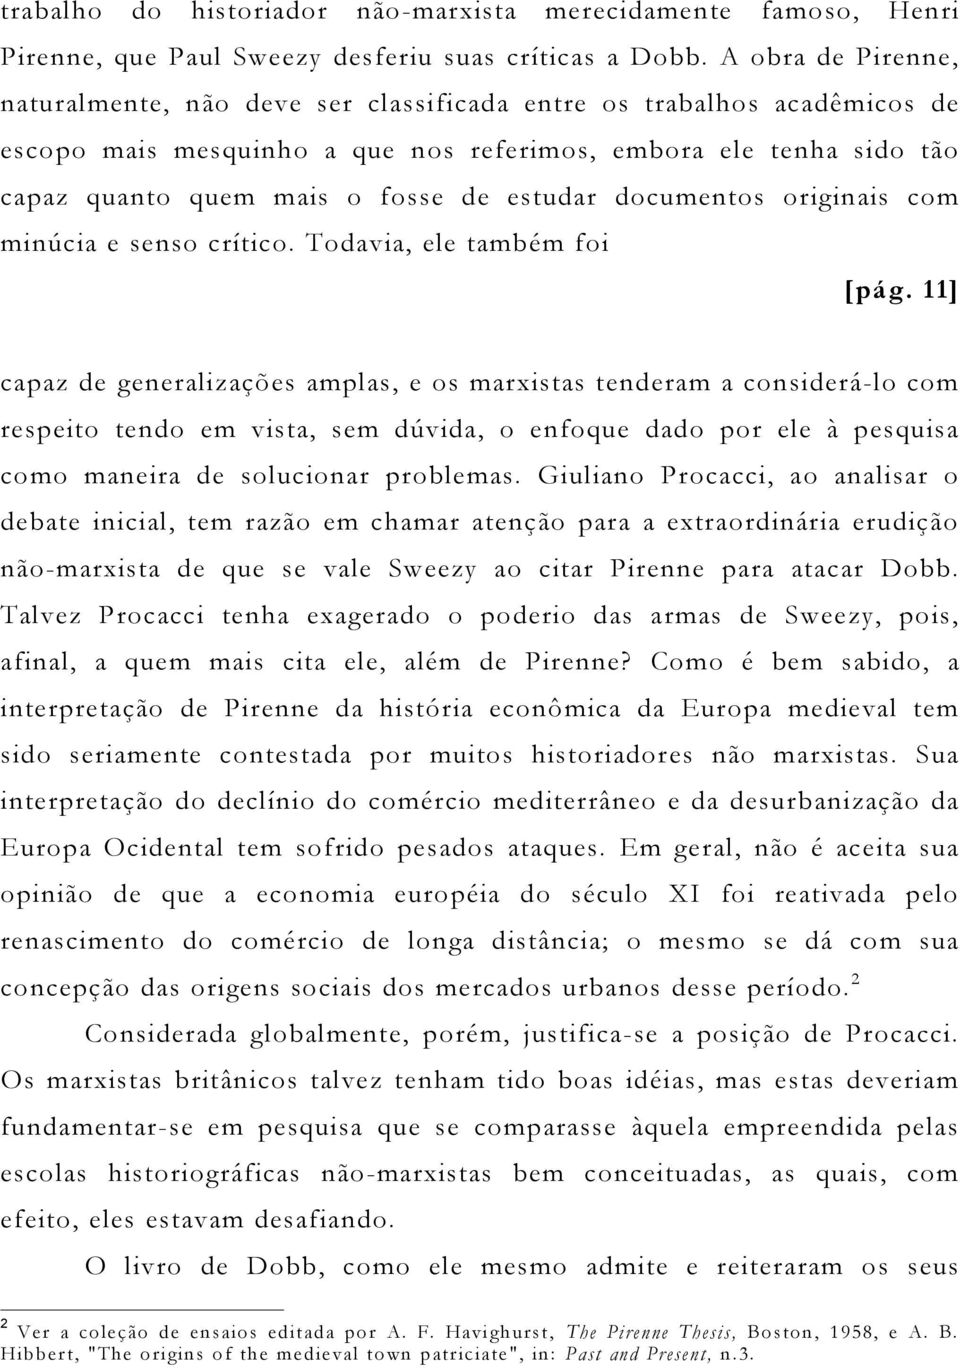 havighurst the pirenne thesis The pirenne thesis was havighurst, alfred f ed the pirenne thesis and the origins of europe: archaeology and the pirenne thesis (1983) pirenne.